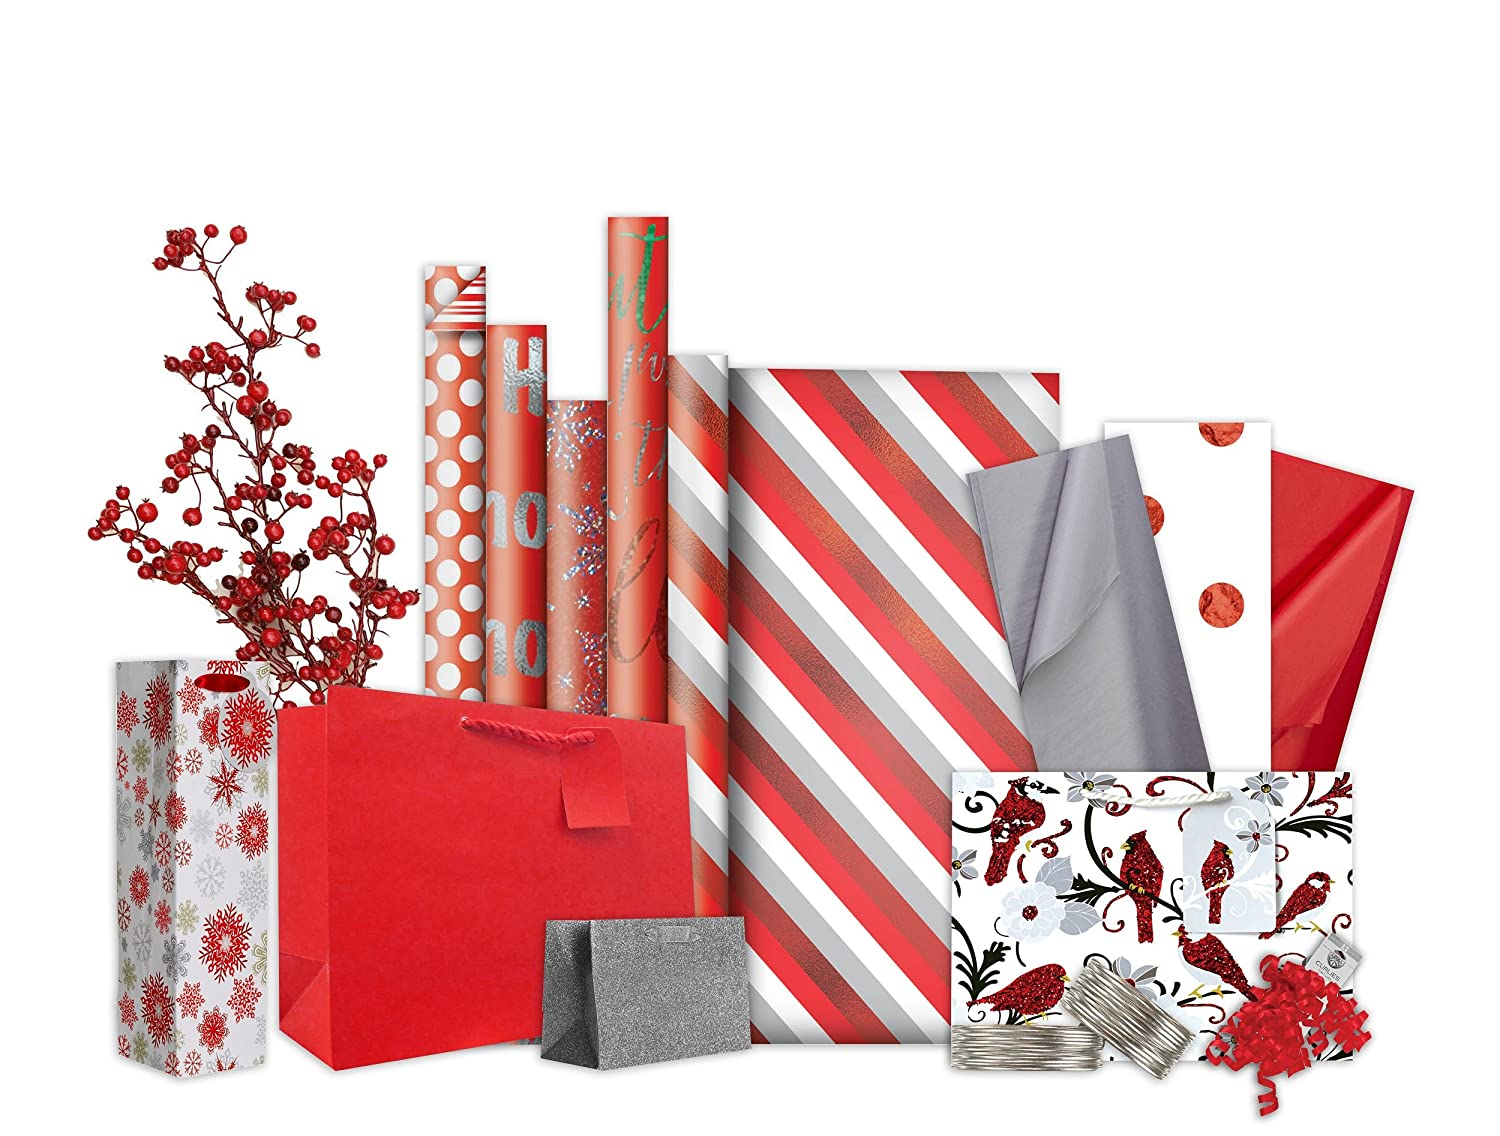 Amazon.com : Jillson Roberts 6 Roll-Count Double-Sided Gift Wrap ...